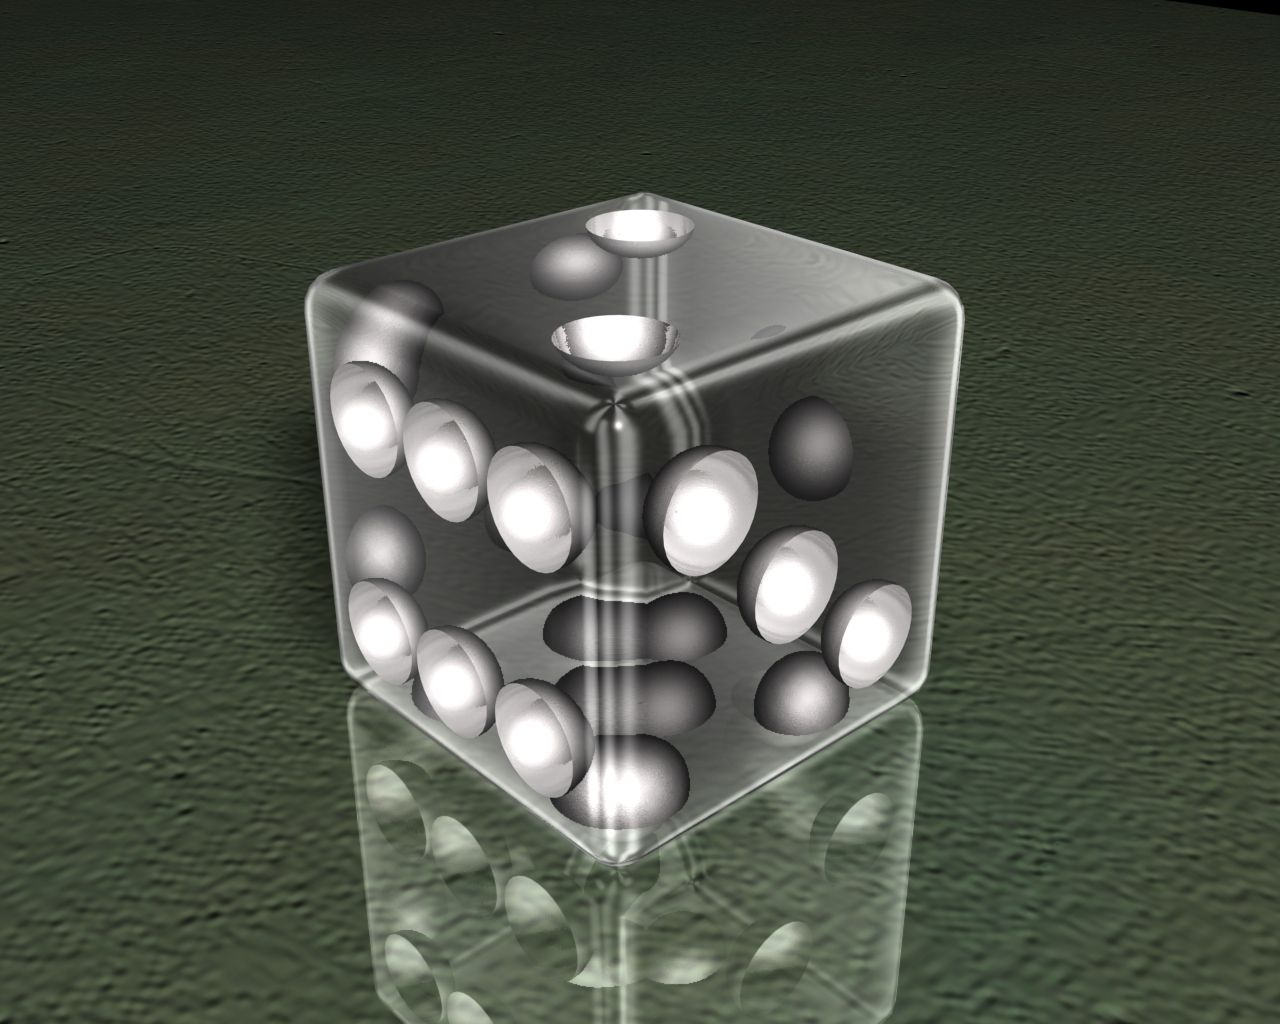 Glass Dice By Todd587 On Deviantart Dicing Glass Game Item